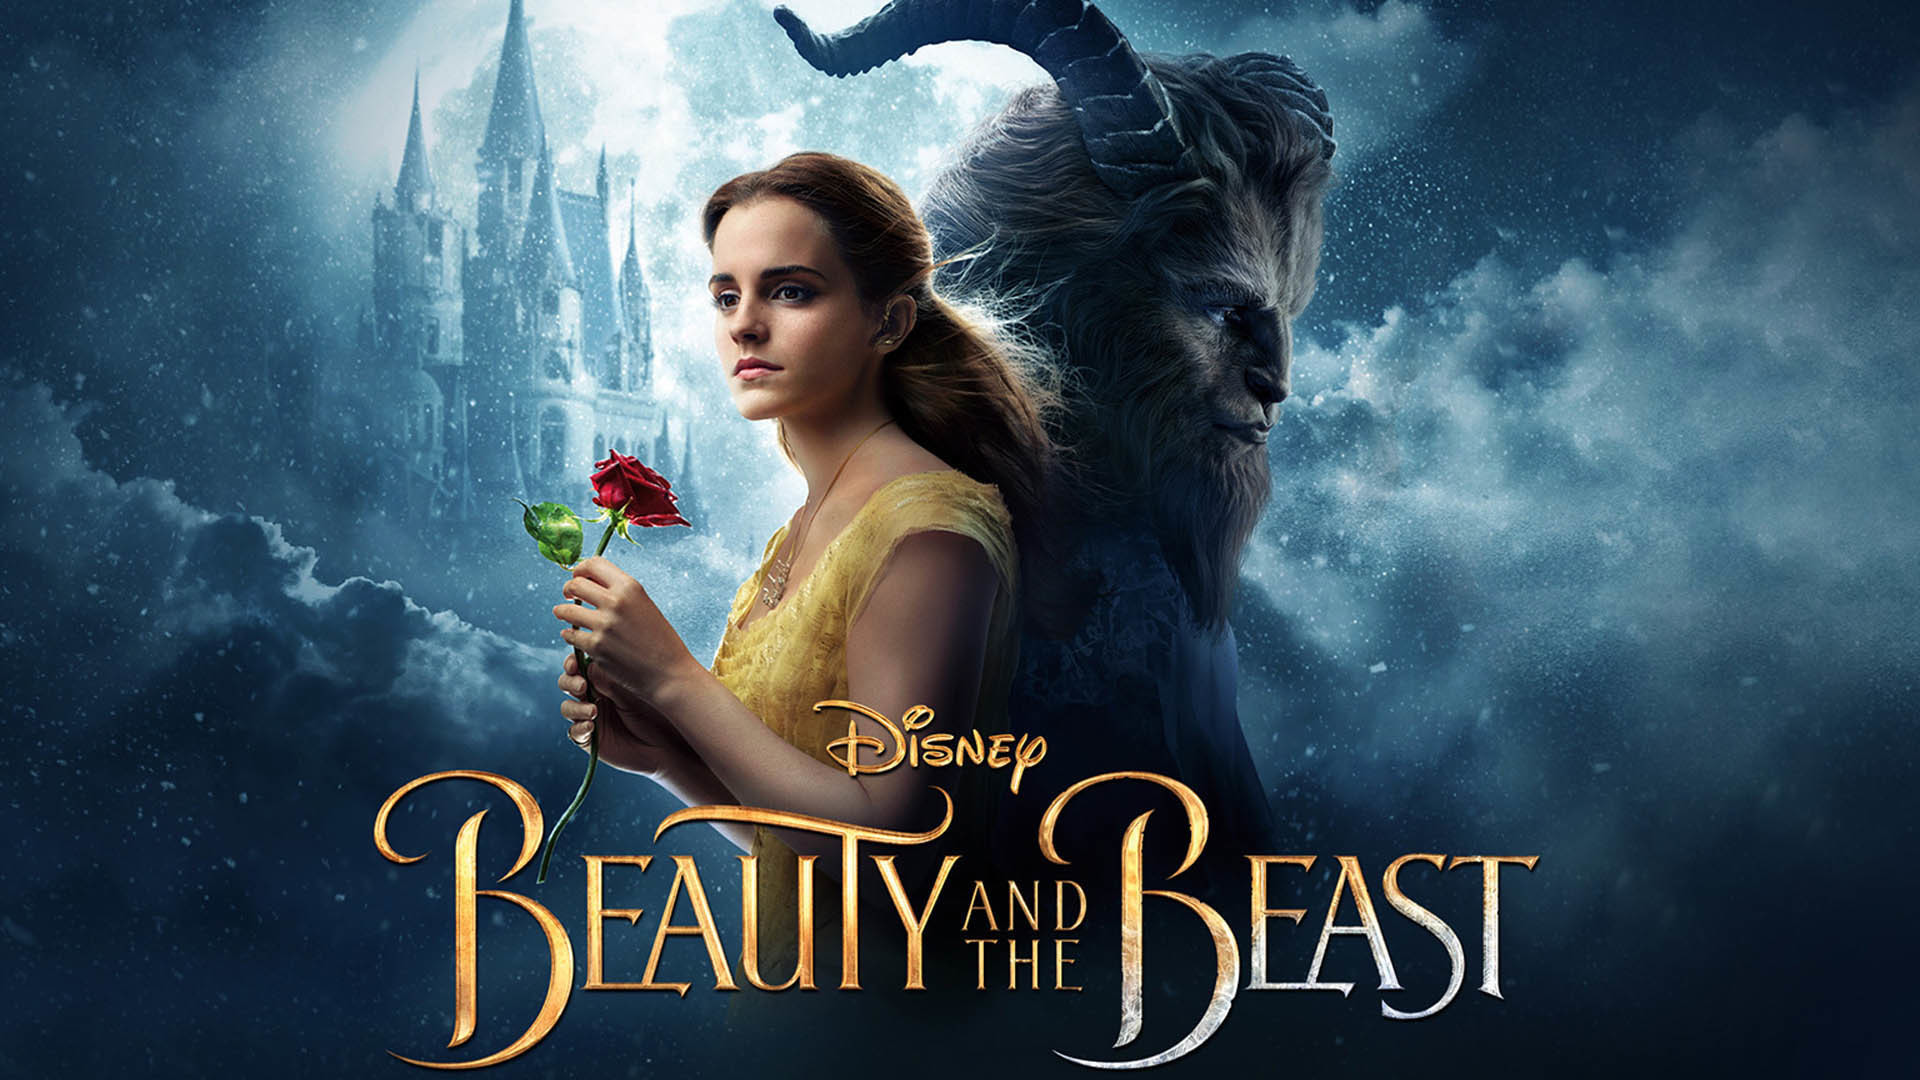 Beauty And The Beast 2017 Hd Wallpapers Wallpapertag